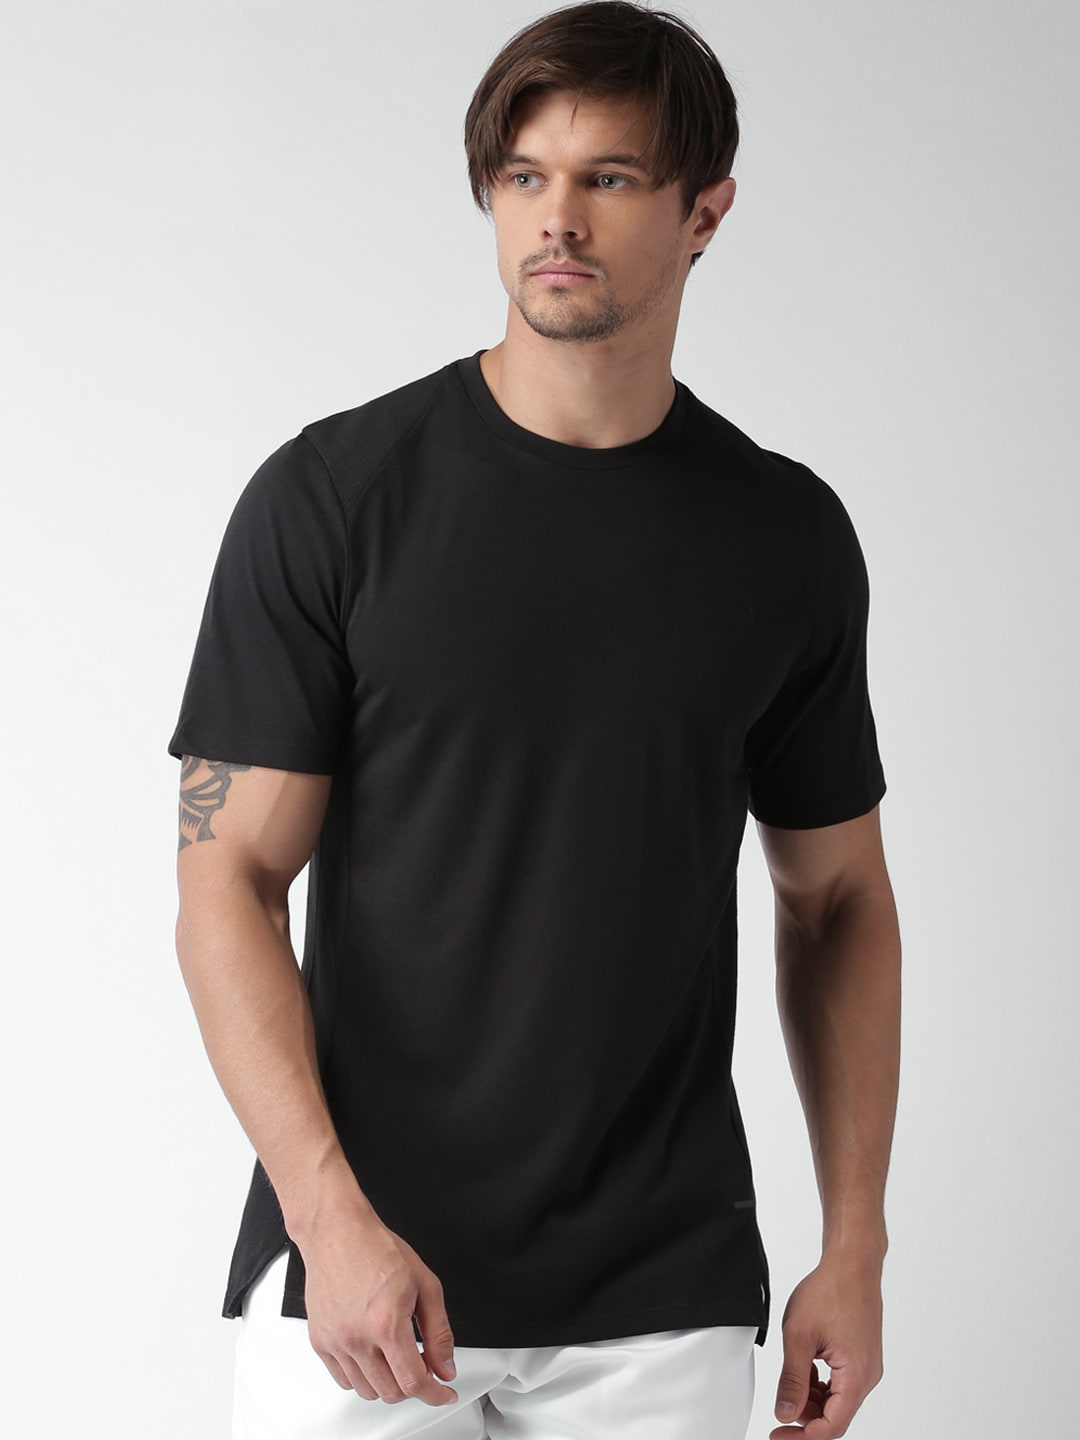 ca9909b4a33a Nike 830950-010 Men Black Solid Round Neck T Shirt - Best Price in ...